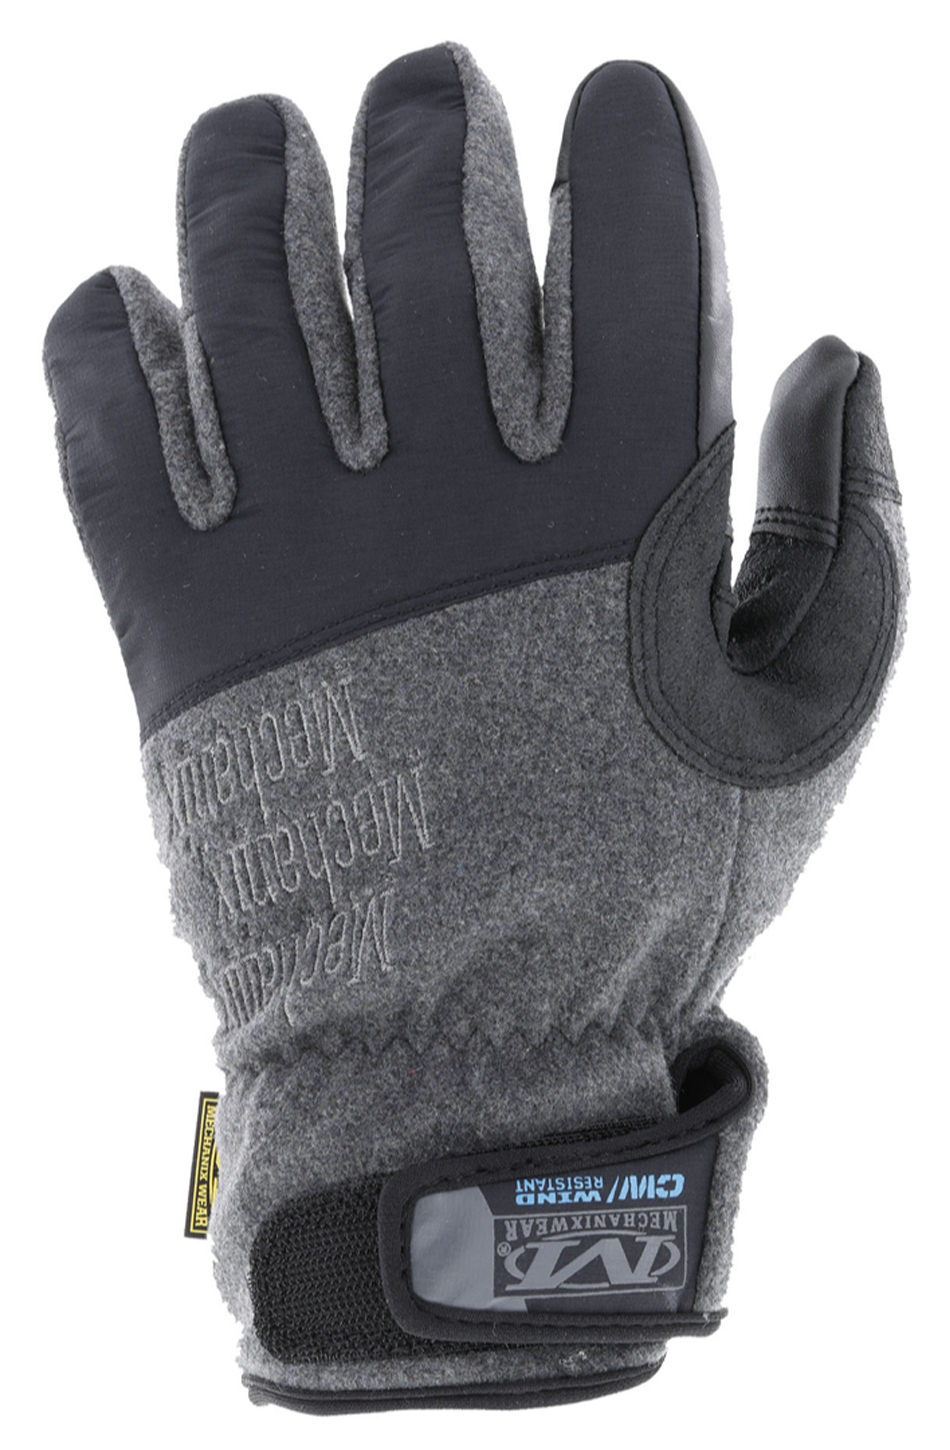 Mechanix Wear MCW-WR-010 Gloves, Shop, Wind Resistant, Reinforced Palm, Hook and Loop Closure, Insulated, Touch Screen Compatible, Black / Gray, Large, Pair